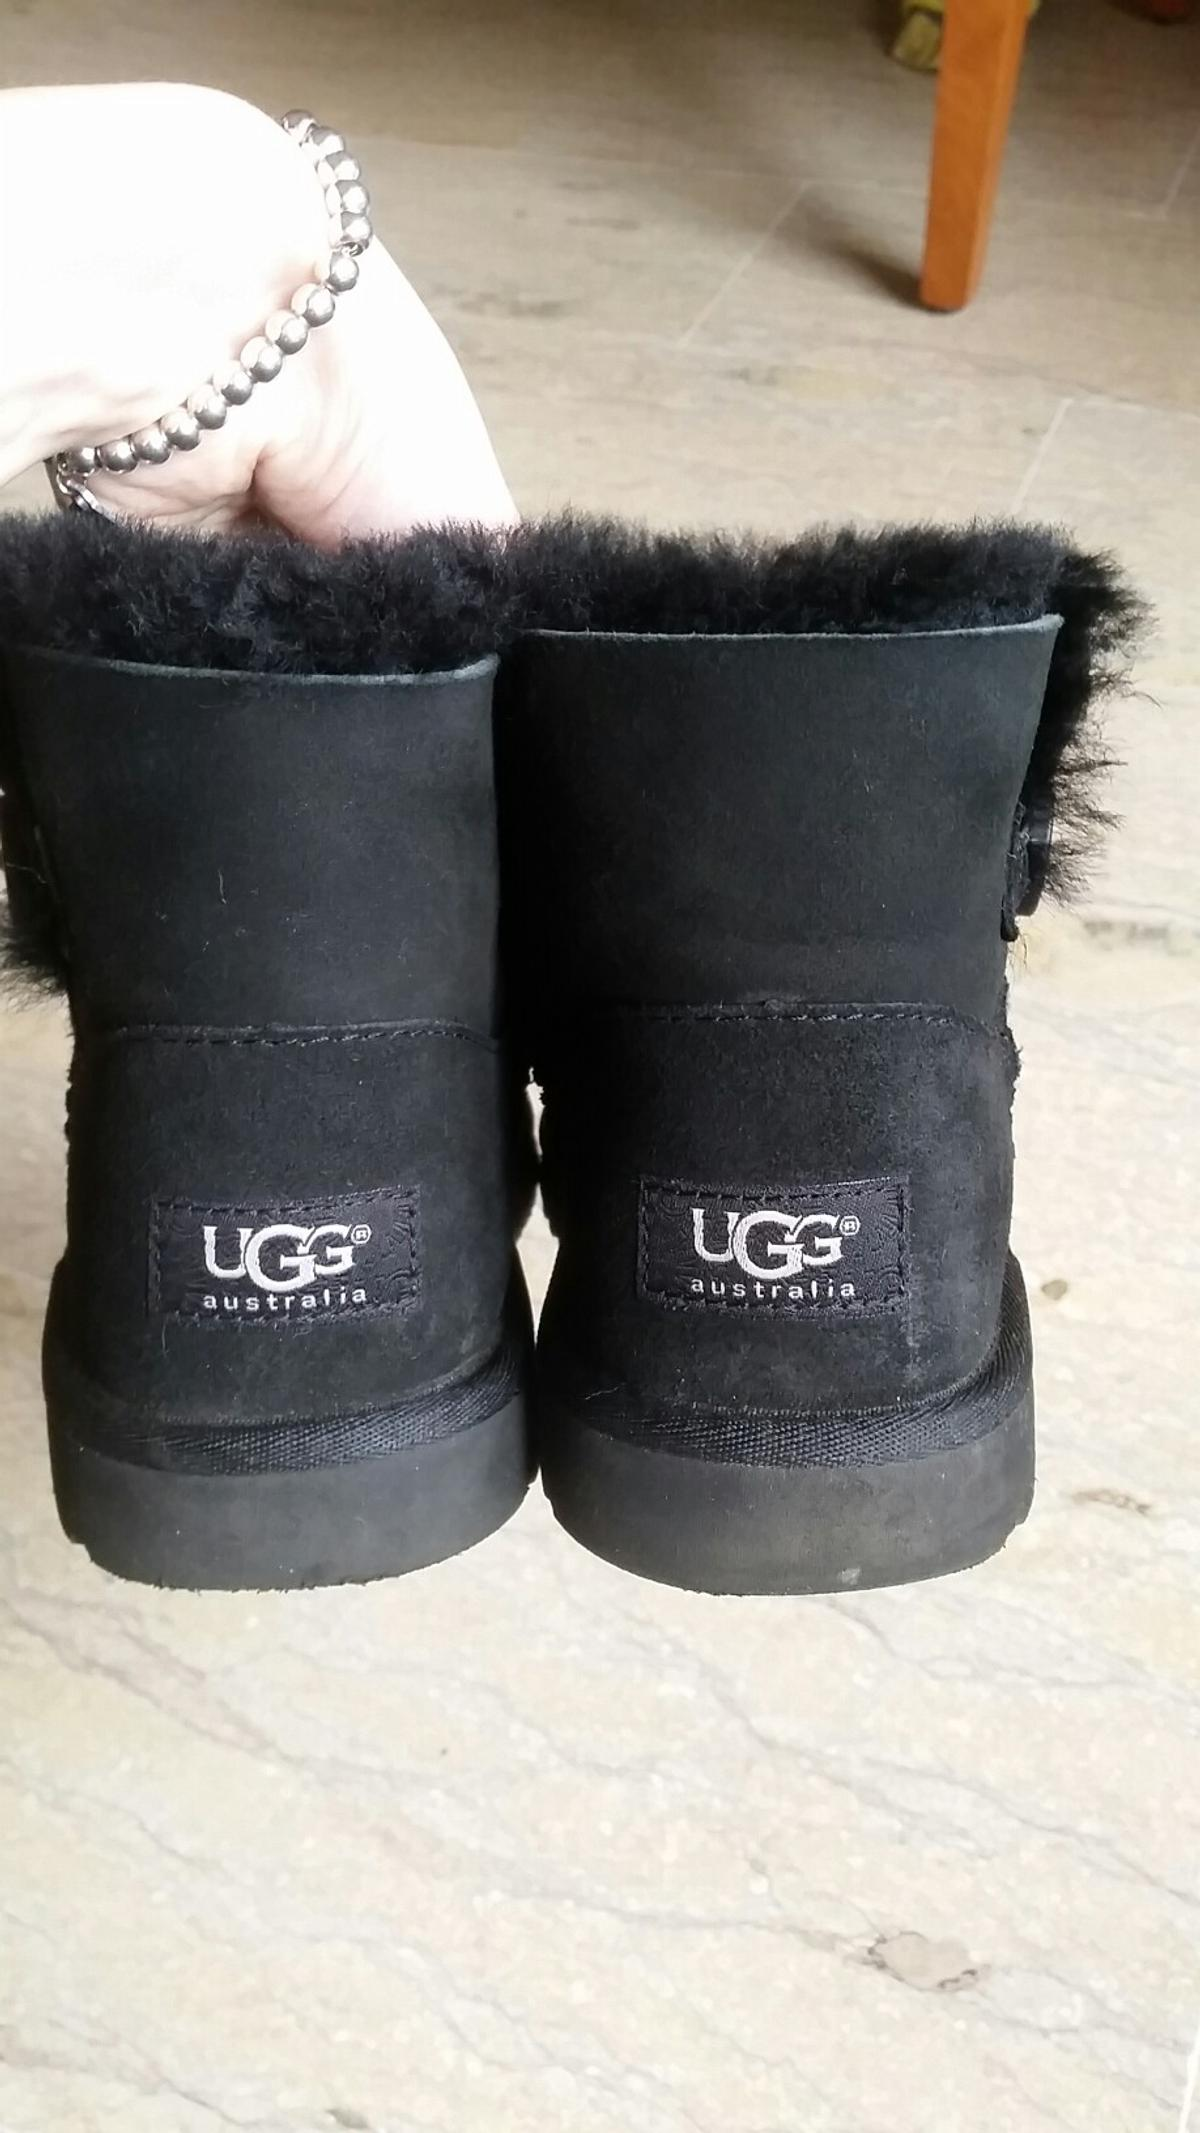 48cbe28c815 Ugg mini boots EU 36 donna 34 bambino in 41122 Modena for €65.00 for ...